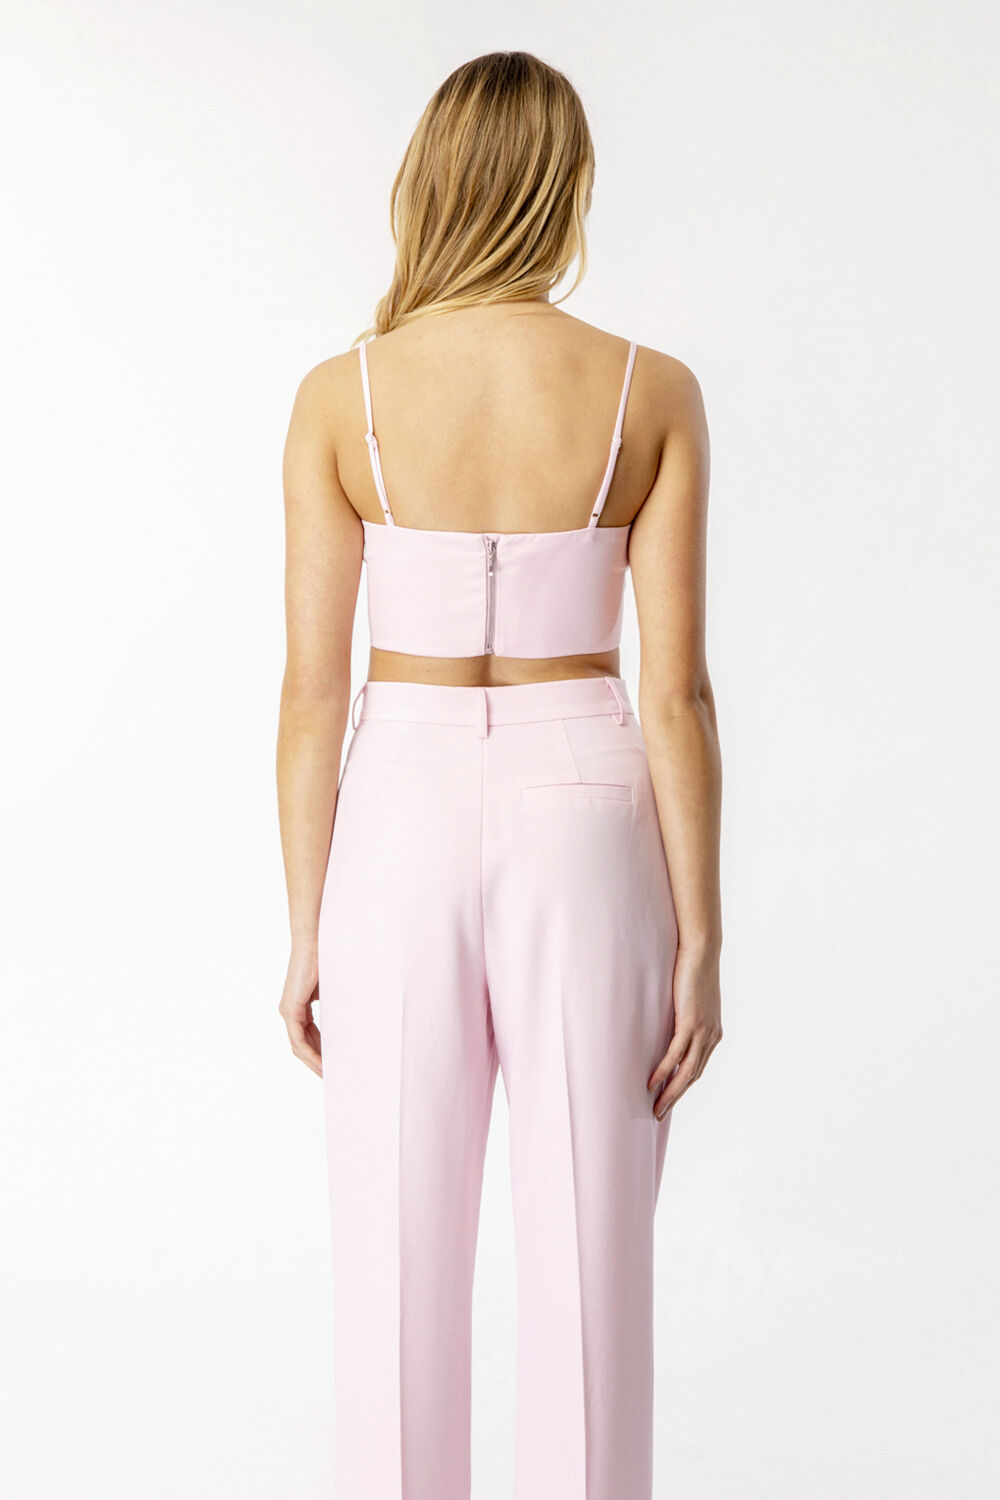 ATHENA CROP TOP  in colour SOFT PINK